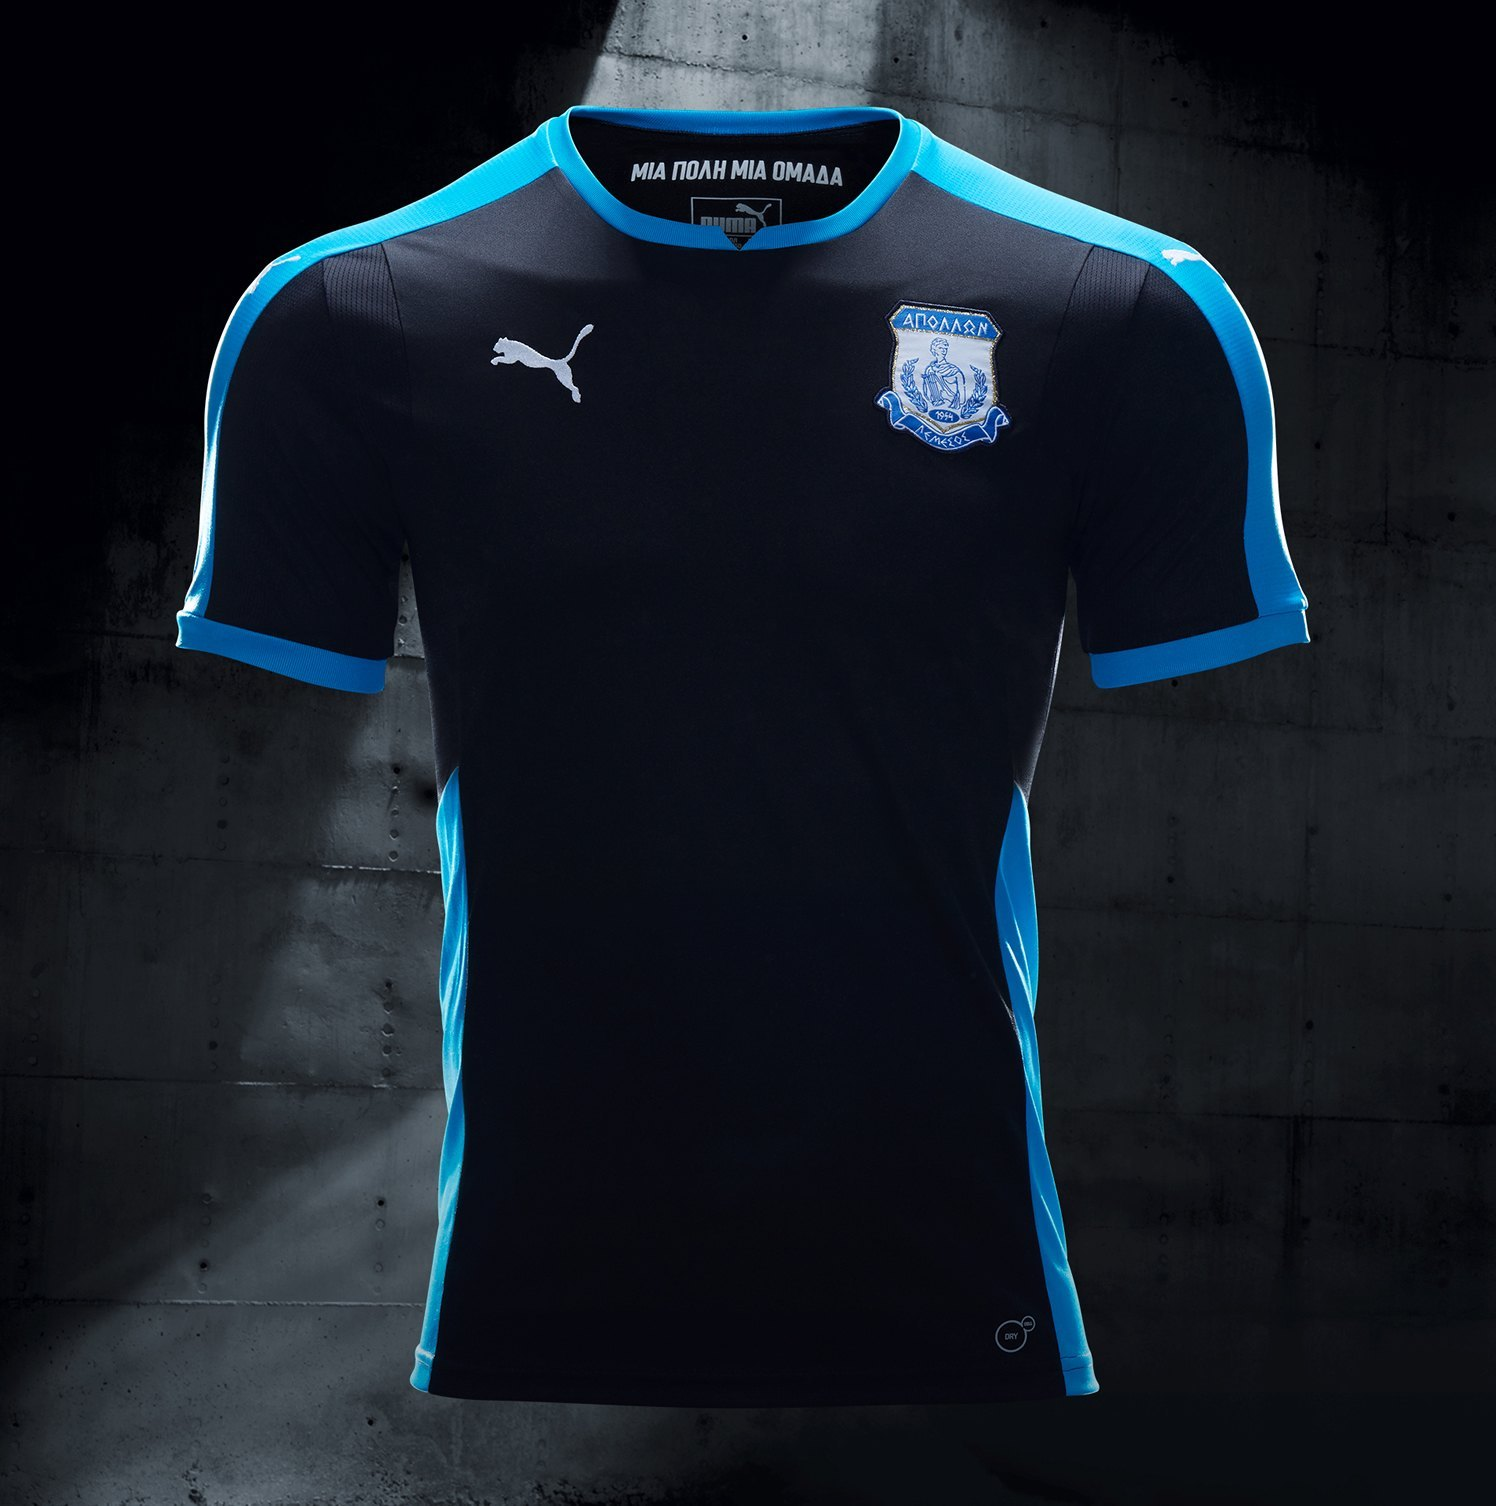 Camiseta versión Step Out del Apollon Limassol | Foto Puma